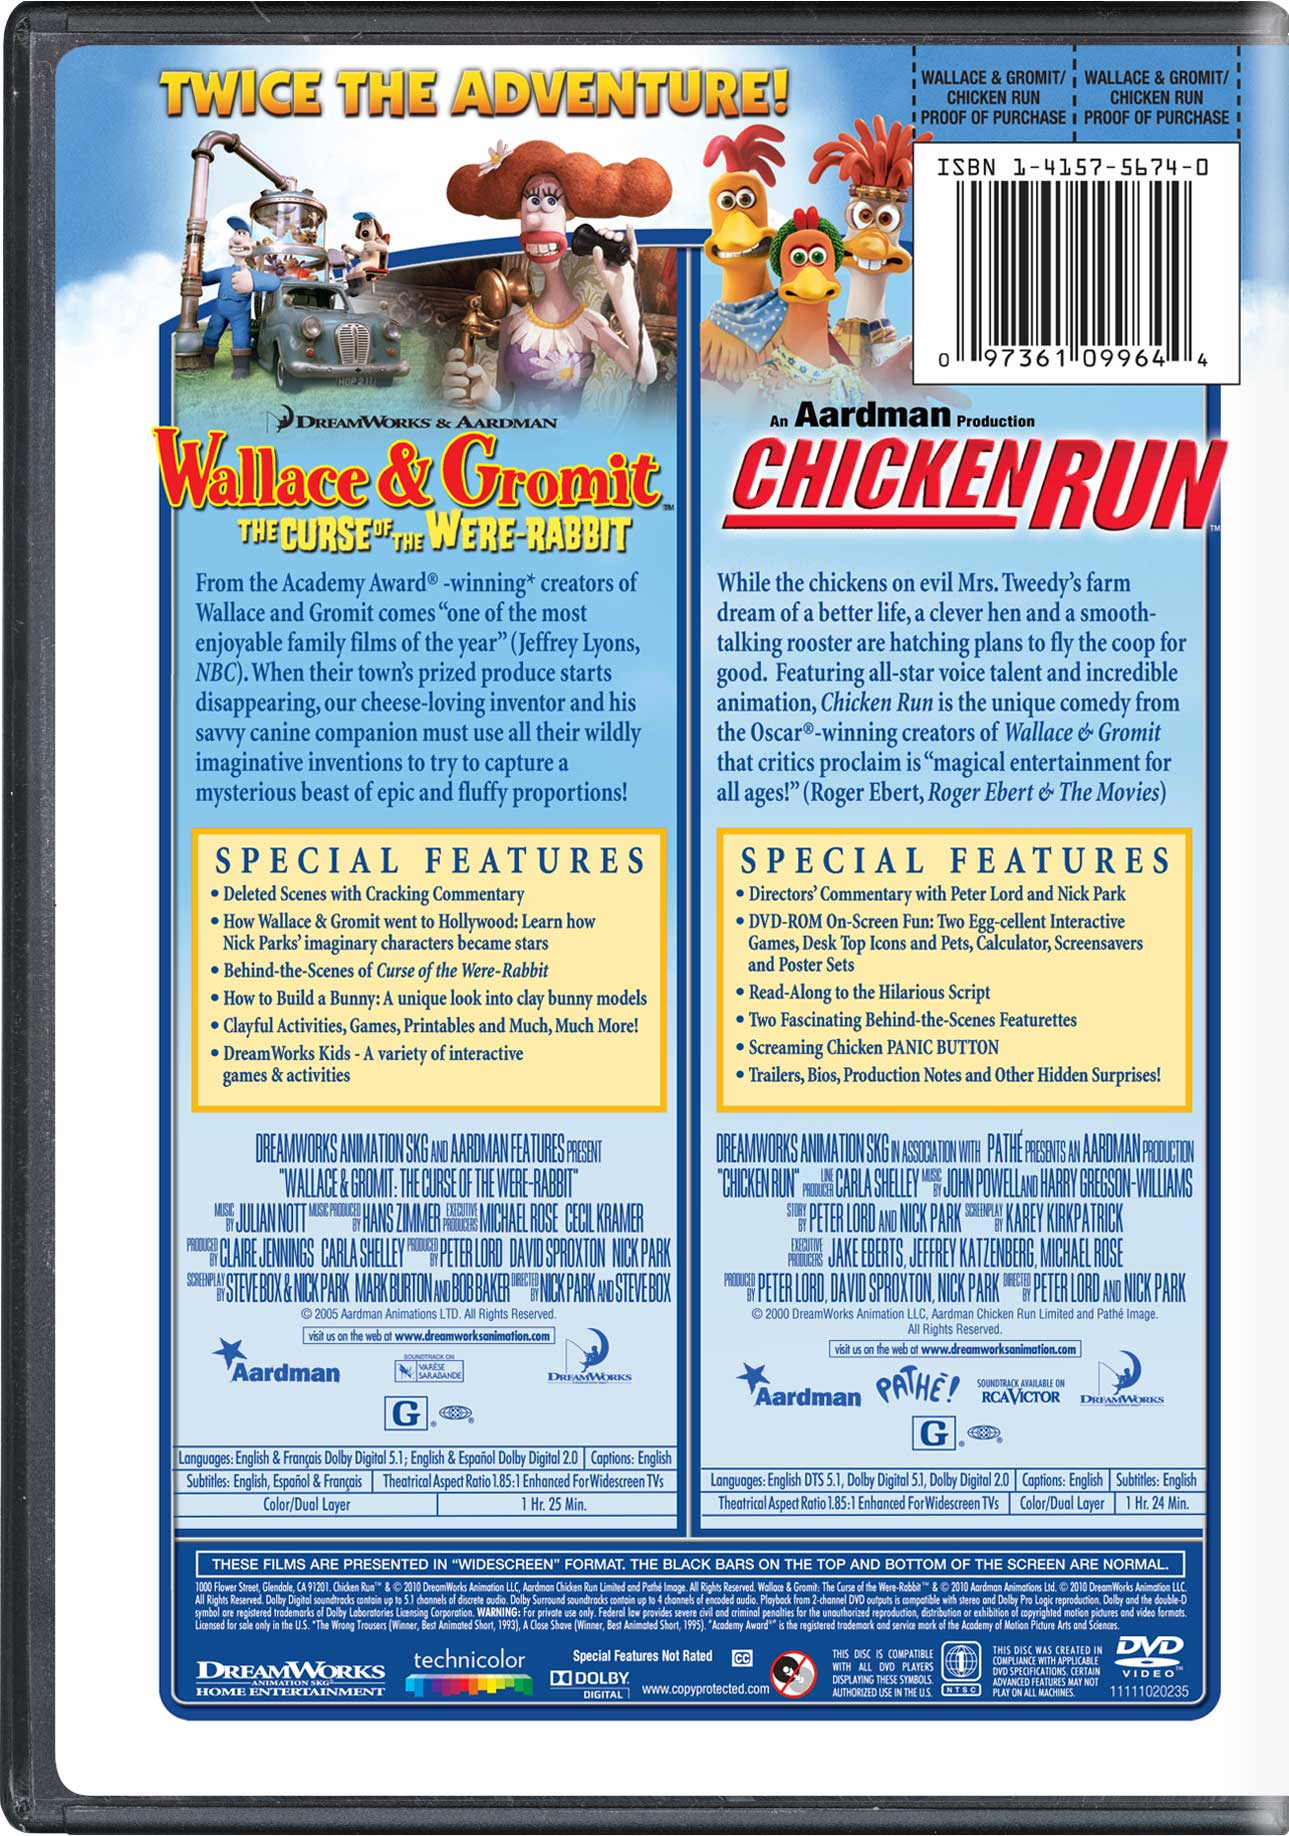 Wallace & Gromit: The Curse of the Were-Rabbit | Movie Page | DVD